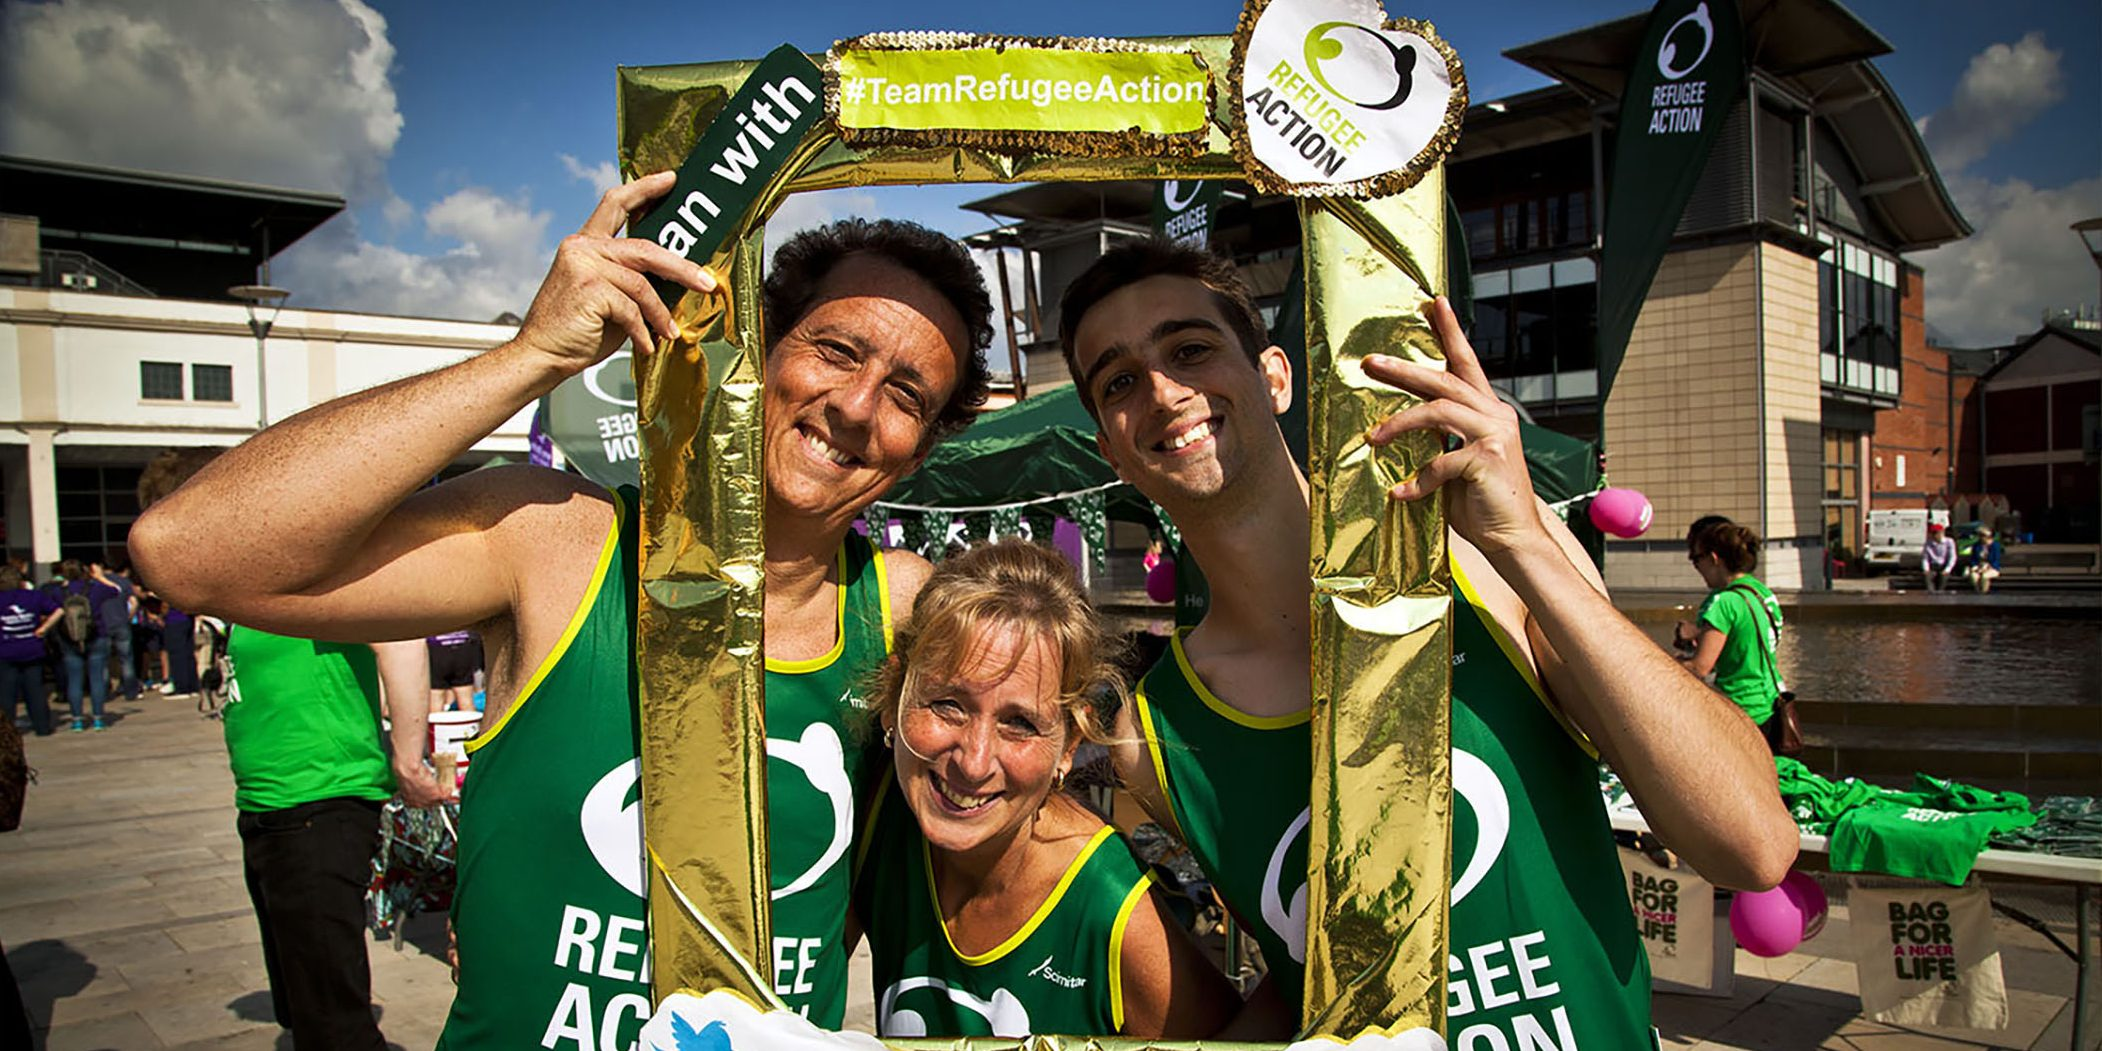 three runners in refugee action vests posing for a photograph holding a golden picture frame